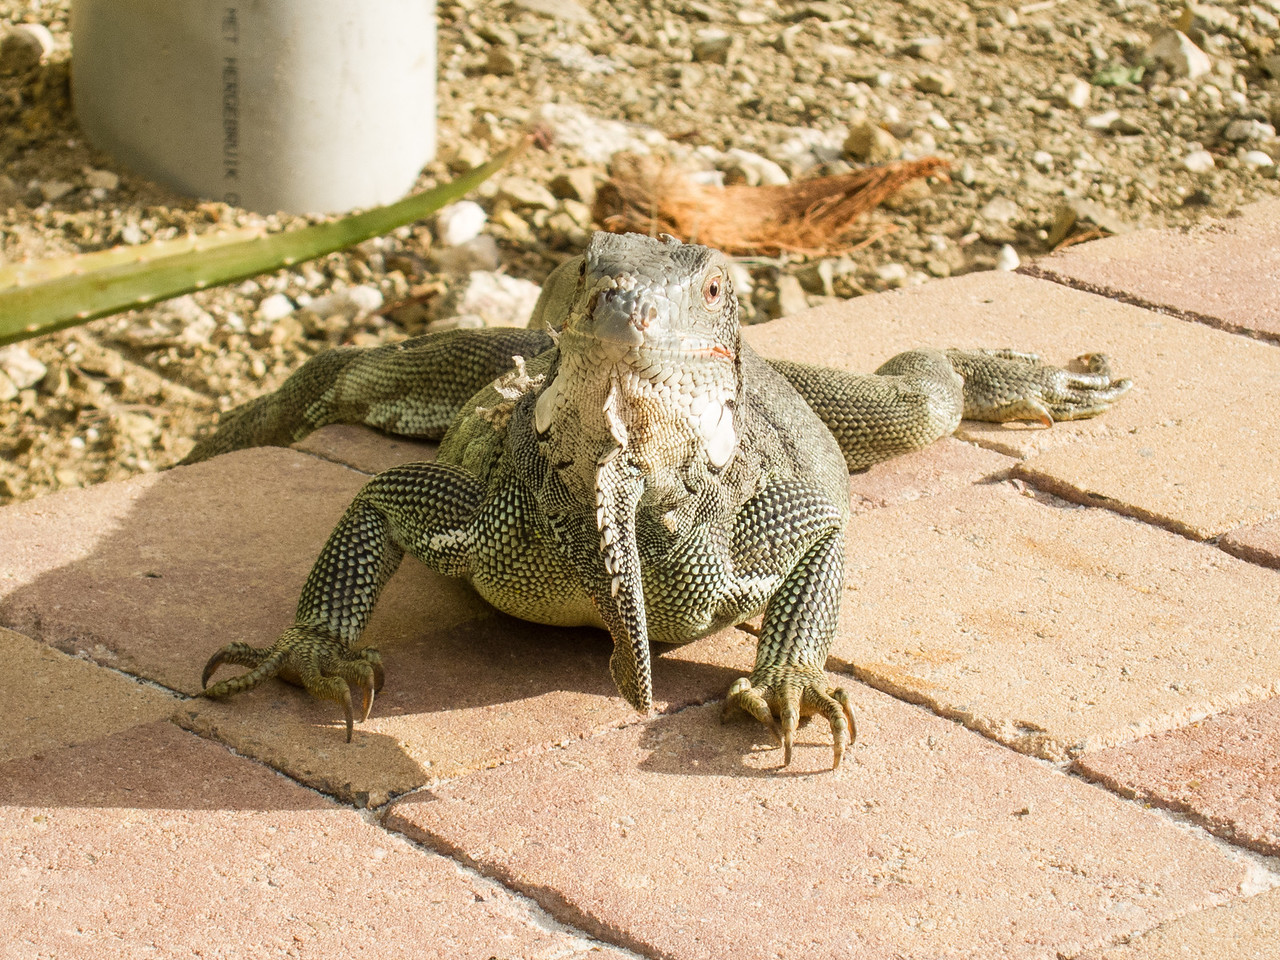 Iguana eye-balling me at Lions Dive & Beach Resort Curaçao - February 2013